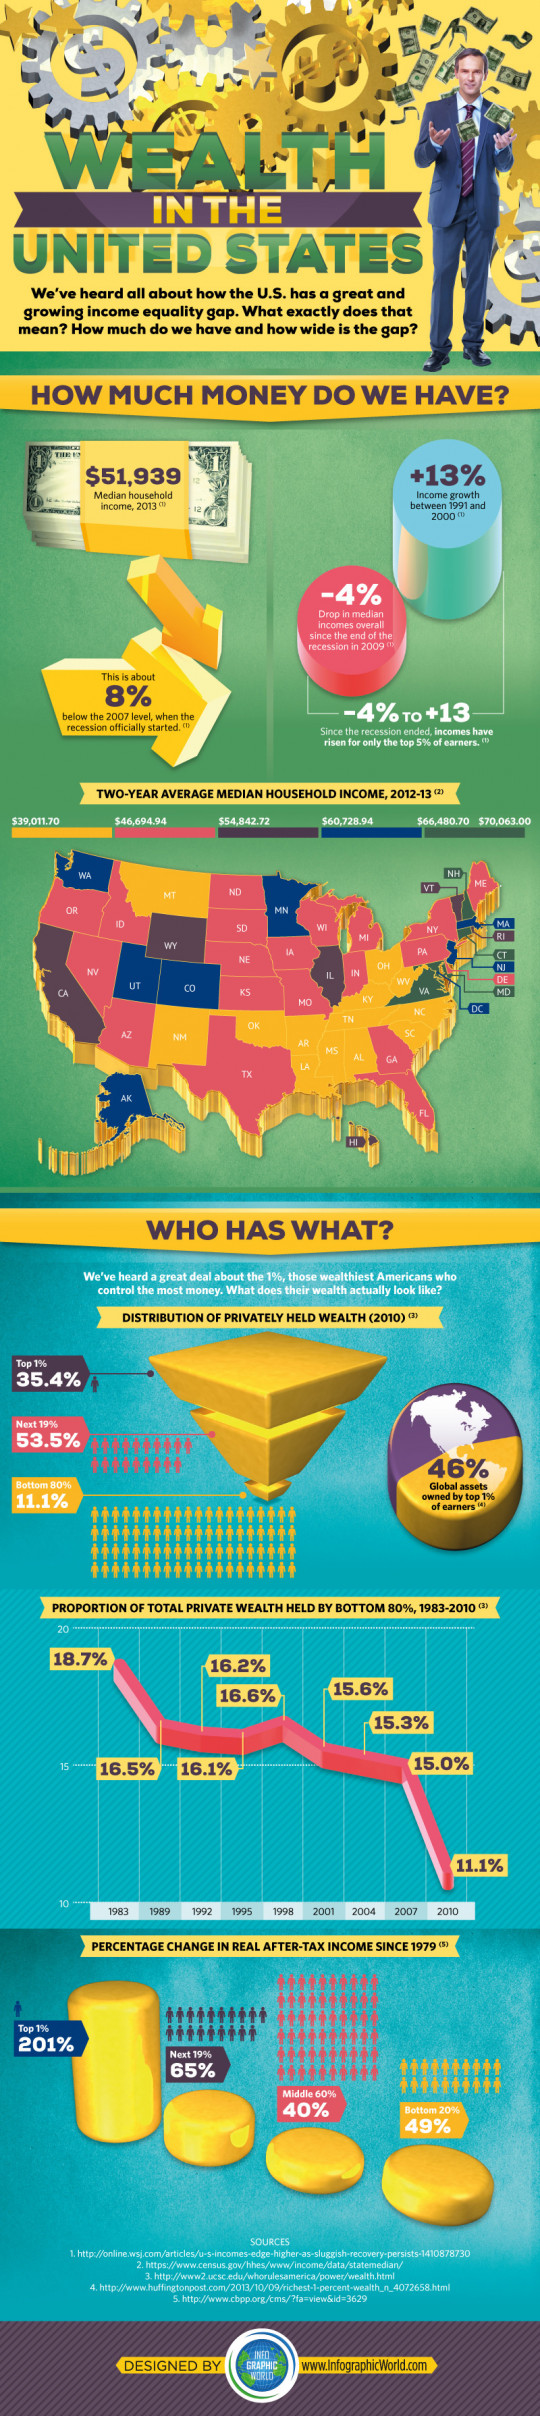 Wealth in the United States